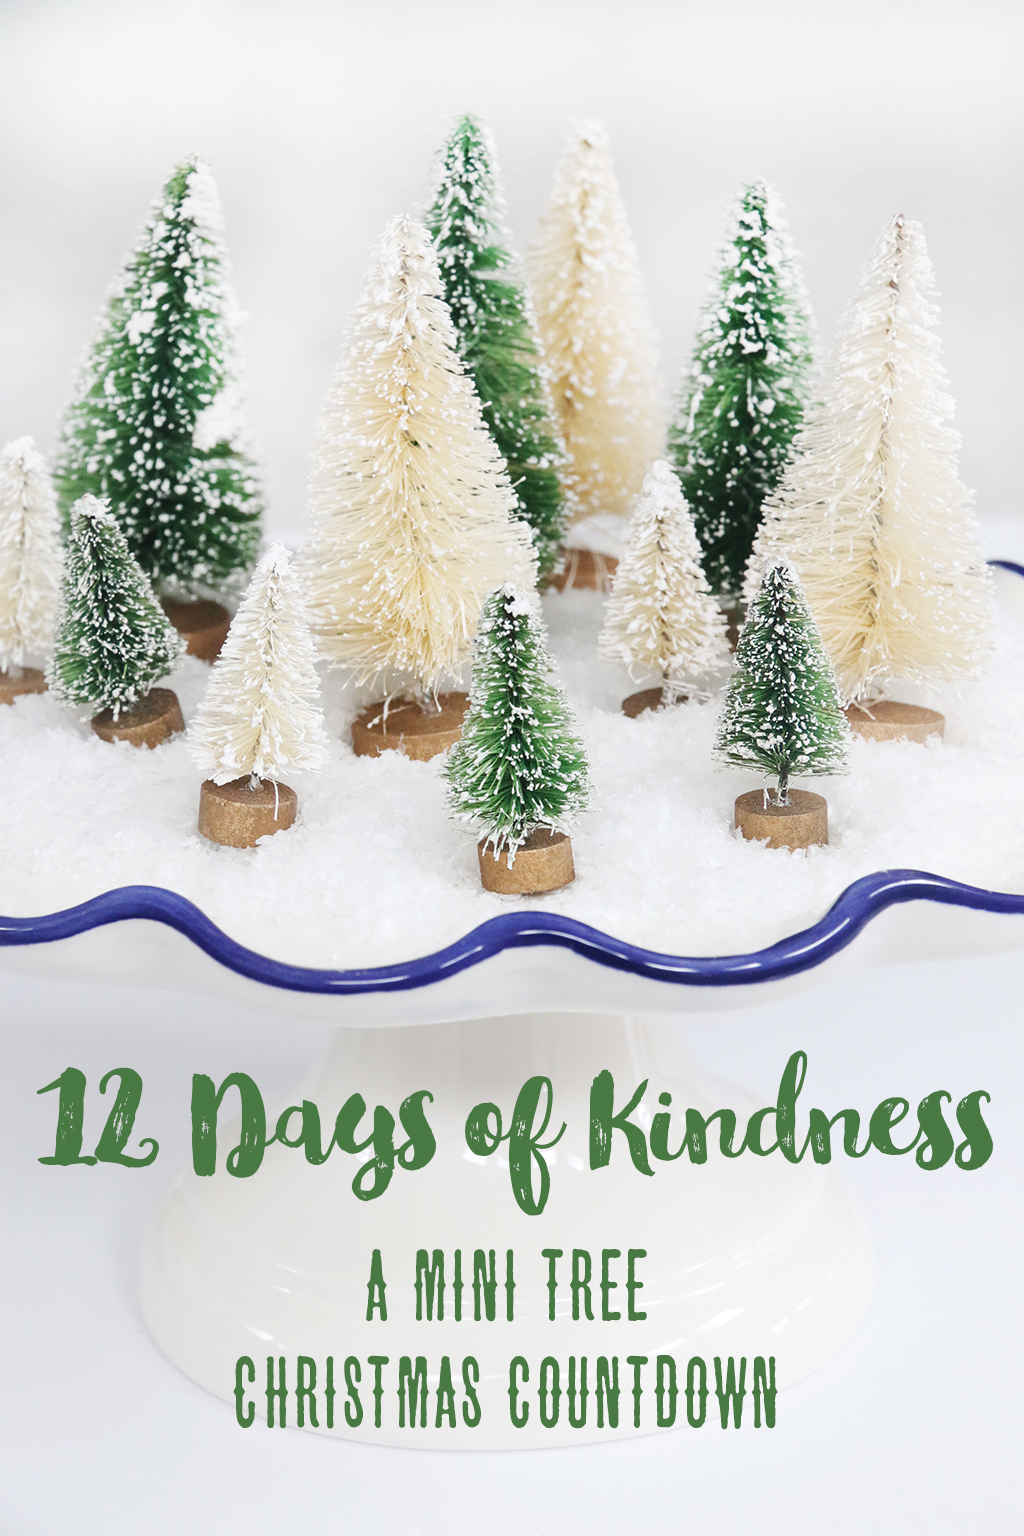 12 Days of Kindness Printable - A Christmas Countdown - A fun way to add family service to your Christmas celebration!